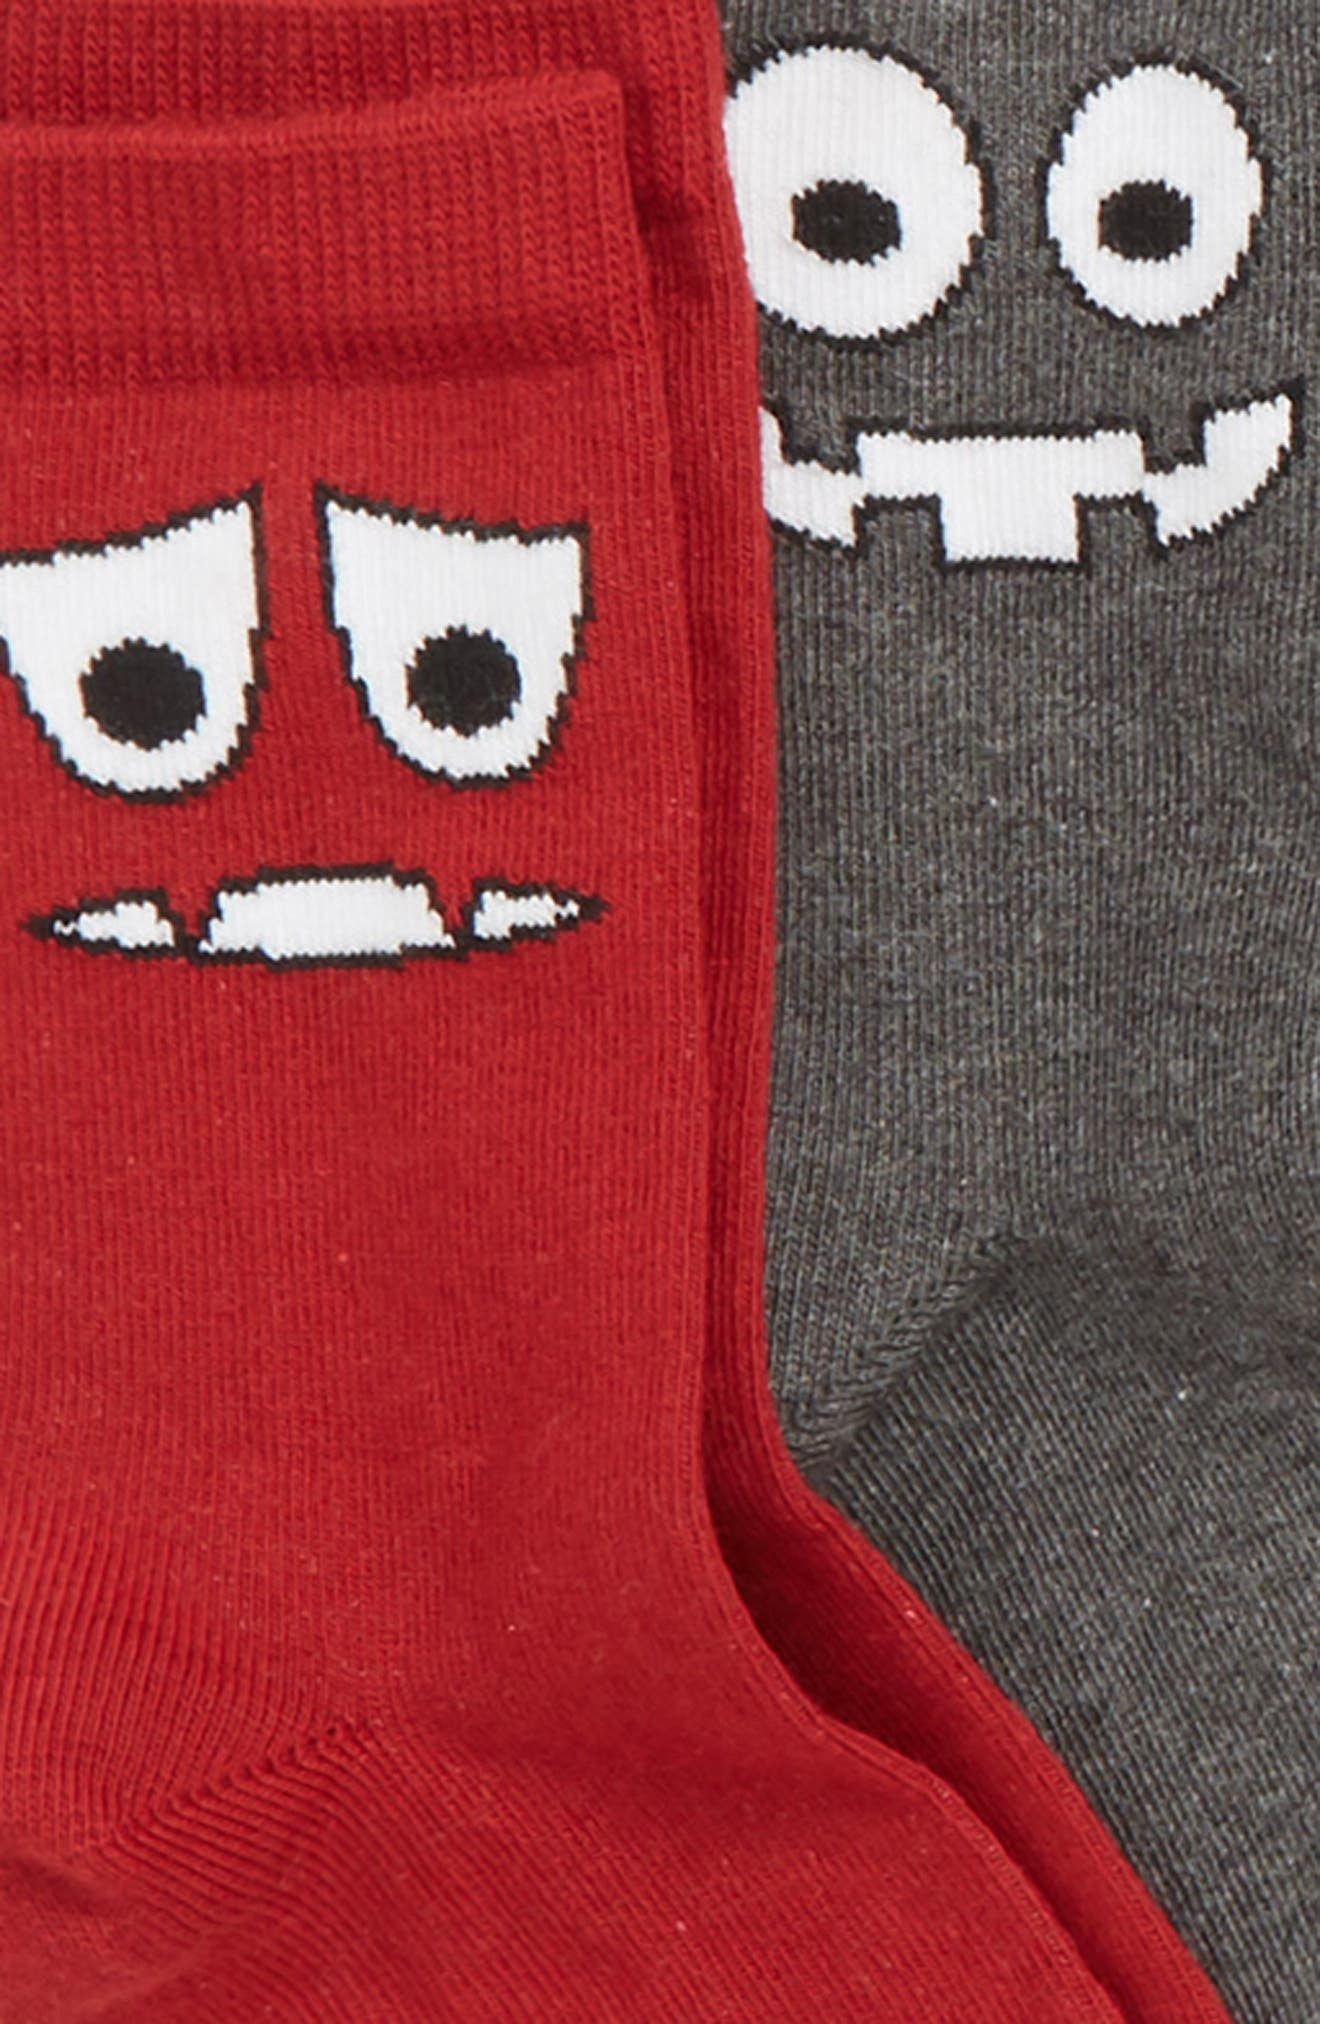 Silly Monster 6-Pack Crew Socks,                             Alternate thumbnail 2, color,                             GREY MEDIUM HEATHER MULTI